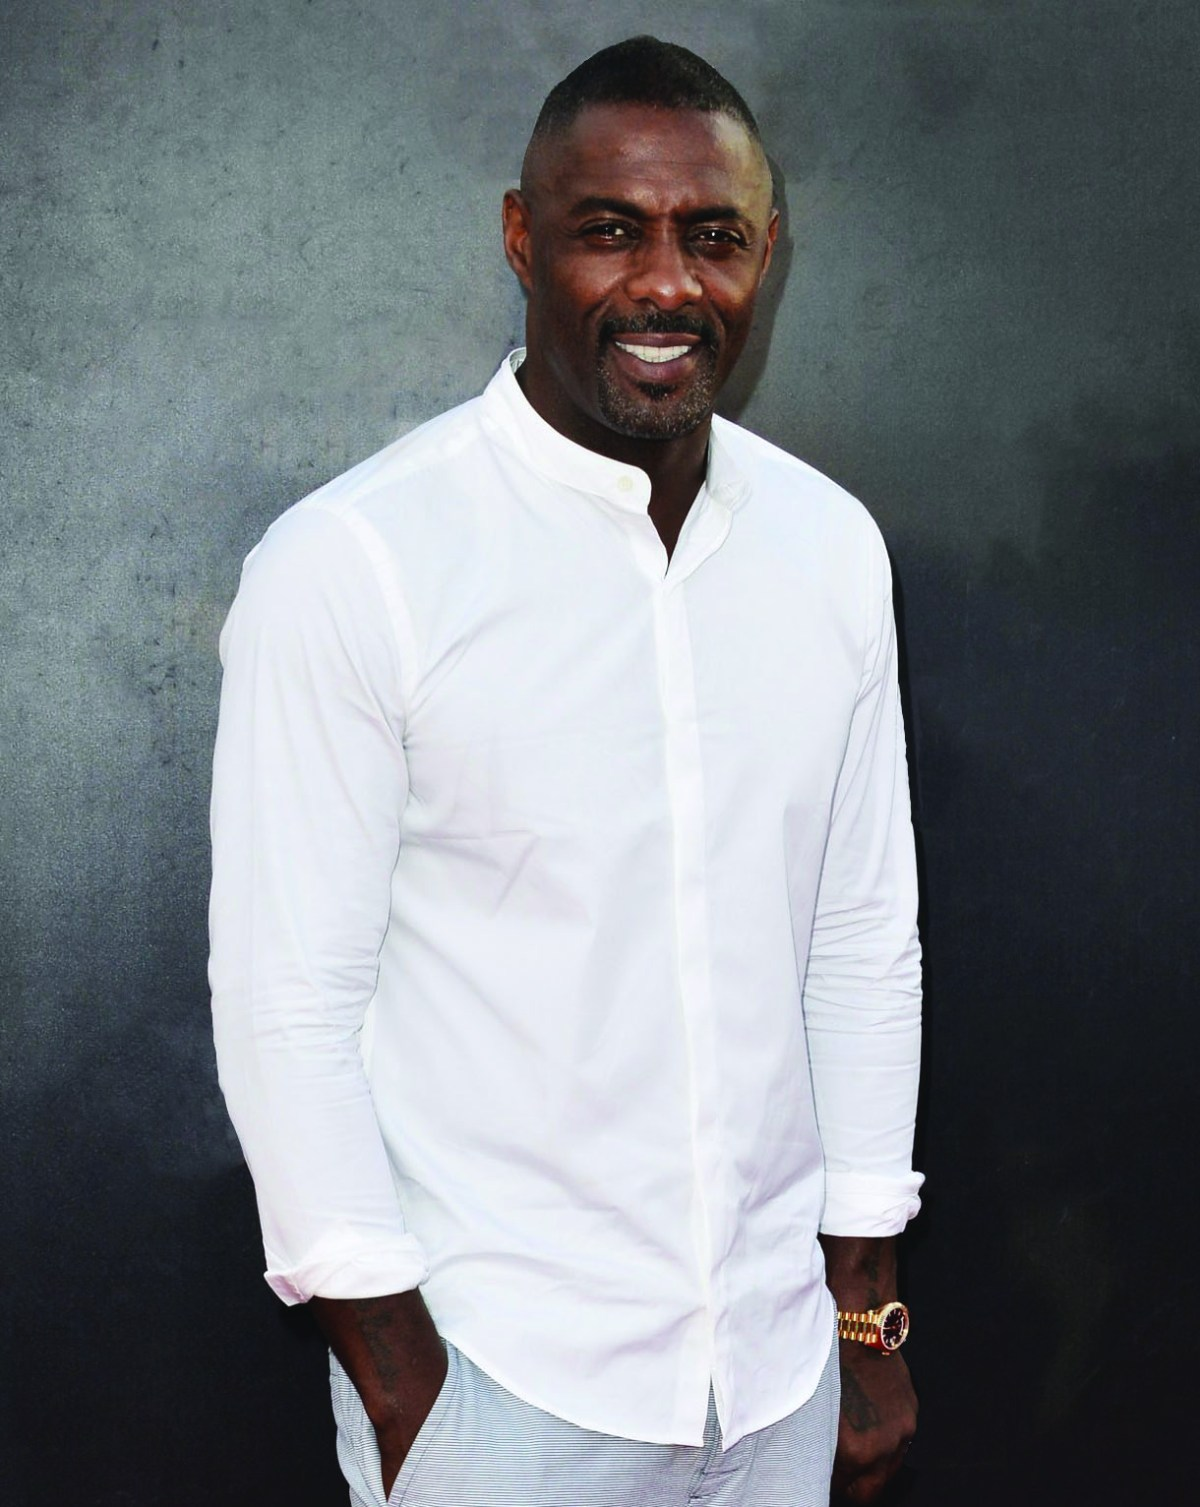 idris elba 2 - Looking Expensive On A Budget